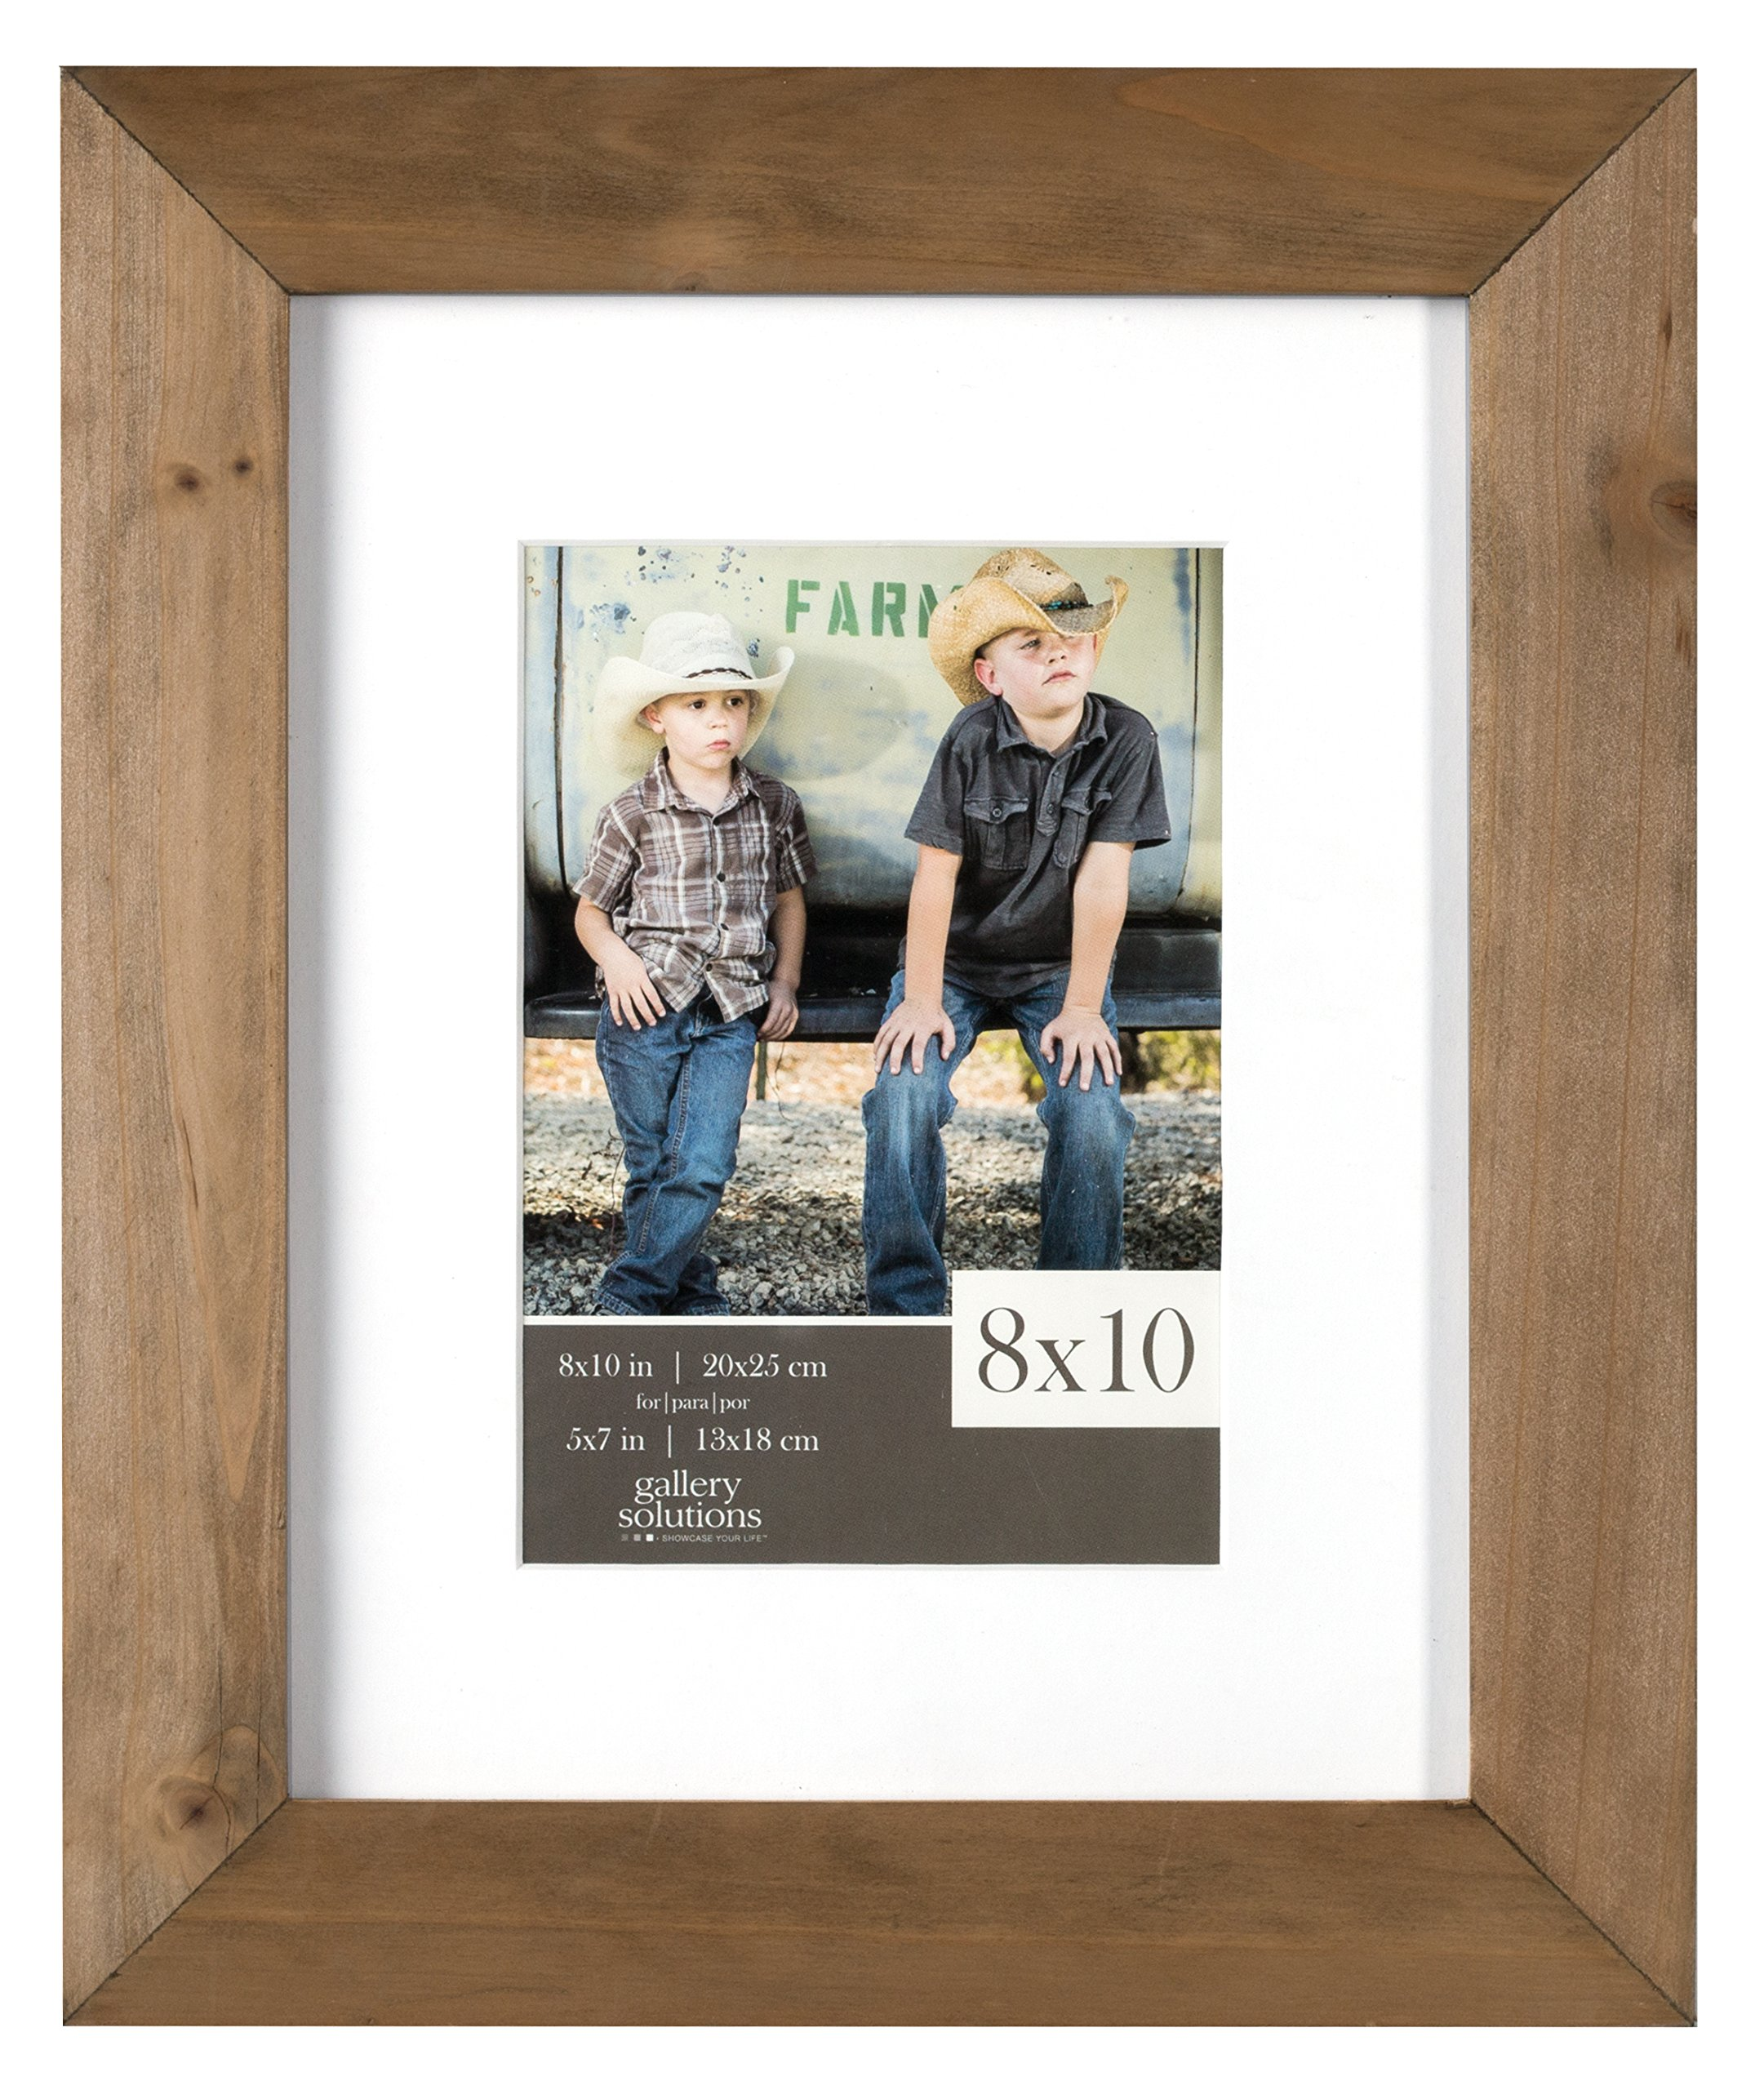 Gallery Solutions 8x10 Flat Ash Wood Wall Picture Frame with White Mat For 5x7 Image